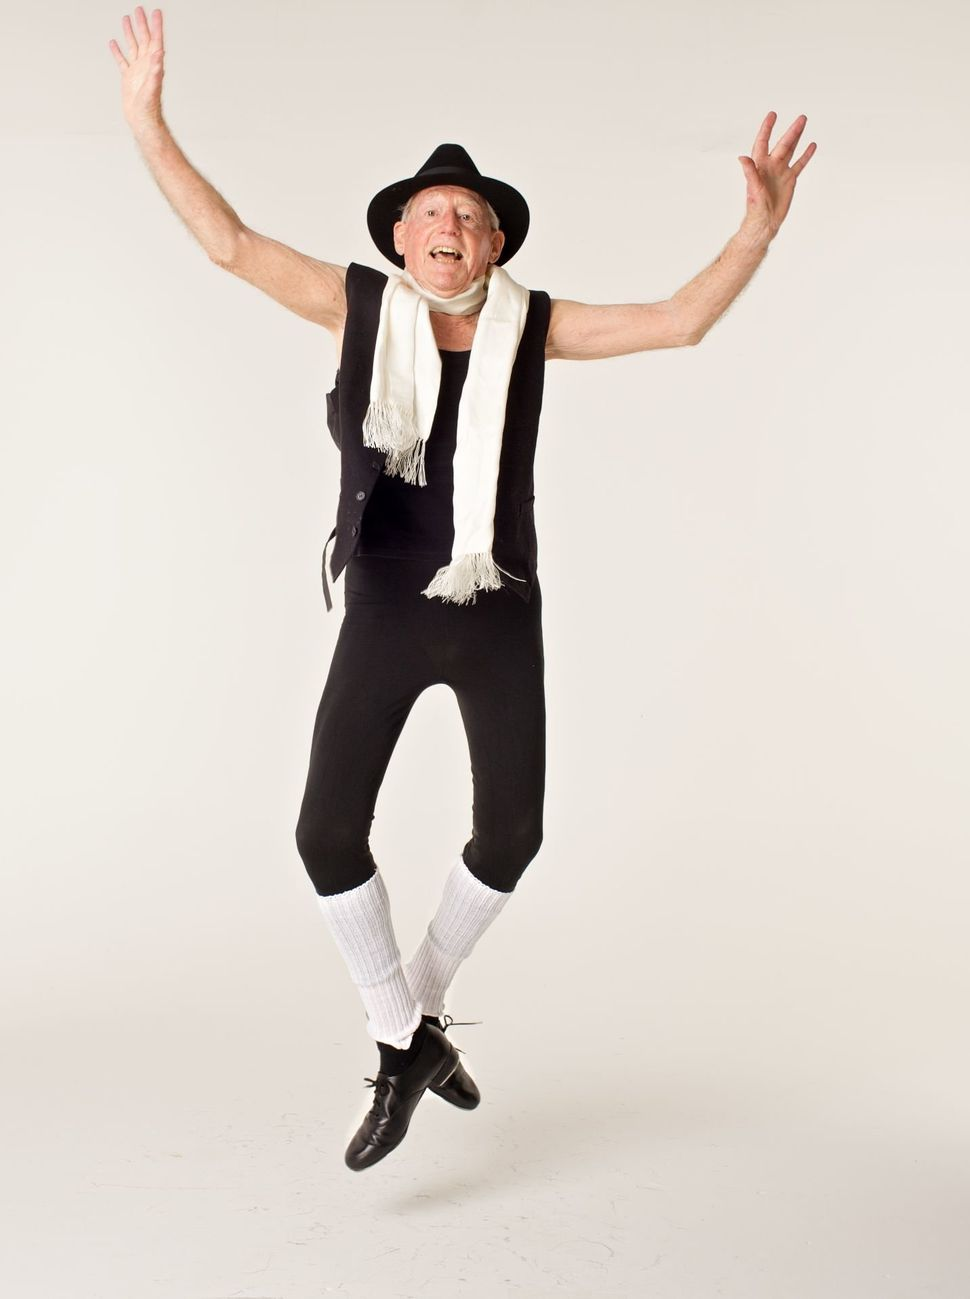 John Lowe took up ballet when he turned 80. Now 94, he dances professionally and enjoys performing on stage.